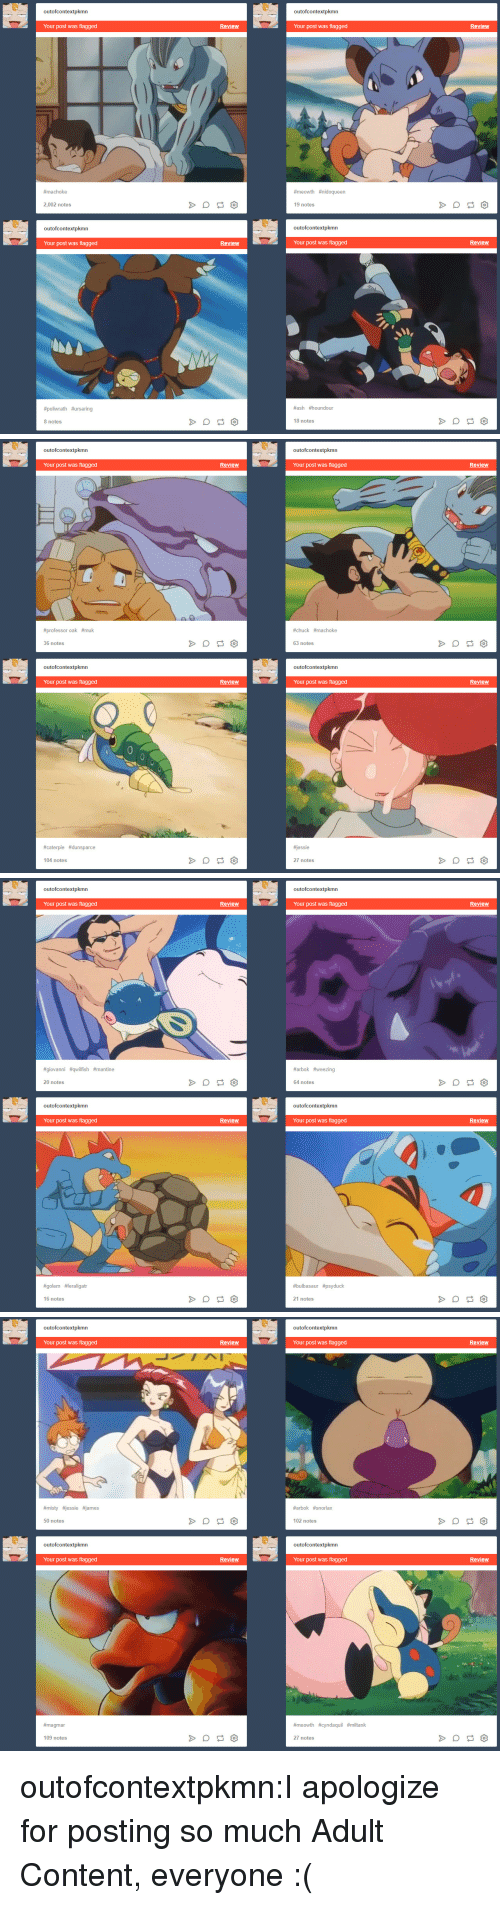 Psyduck: outofcontextpkmn  outofcontextpkmn  Your post was flagged  Review  Your post was flagged  Review  #ma choke  #meowth #nidoqueen  2,002 notes  19 notes  outofcontextpkmn  outofcontextpkmn  Your post was flagged  Review  Your post was flagged  Review  #poliwrath #ursaring  #ash #houndour  8 notes  18 notes   outofcontextpkmn  outofcontextpkmn  Review  Review  Your post was flagged  Your post was flagged  #chuck #machoke  #professor oak #muk  63 notes  36 notes  outofcontextpkmn  outofcontextpkmn  Review  Review  Your post was flagged  Your post was flagged  essie  #caterpie #dunsparce  27 notes  104 notes   outofcontextpkmn  outofcontextpkmn  Your post was flagged  Review  Your post was flagged  Review  #giovanni #qwifish #mantine  #arbok #weezing  20 notes  64 notes  outofcontextpkmn  outofcontextpkmn  Your post was flagged  Review  Your post was flagged  Review  #golem #feraligatr  #bulbasaur #psyduck  16 notes  21 notes   outofcontextpkmn  outofcontextpkmn  Your post was flagged  Review  Your post was flagged  Review  #místy #jessie ames  #arbok #snorlax  50 notes  102 notes  outofcontextpkmn  outofcontextpkmn  Your post was flagged  Review  Your post was flagged  Review  #magmar  #meowth #cyndaquil #miltank  109 notes  27 notes outofcontextpkmn:I apologize for posting so much Adult Content, everyone :(